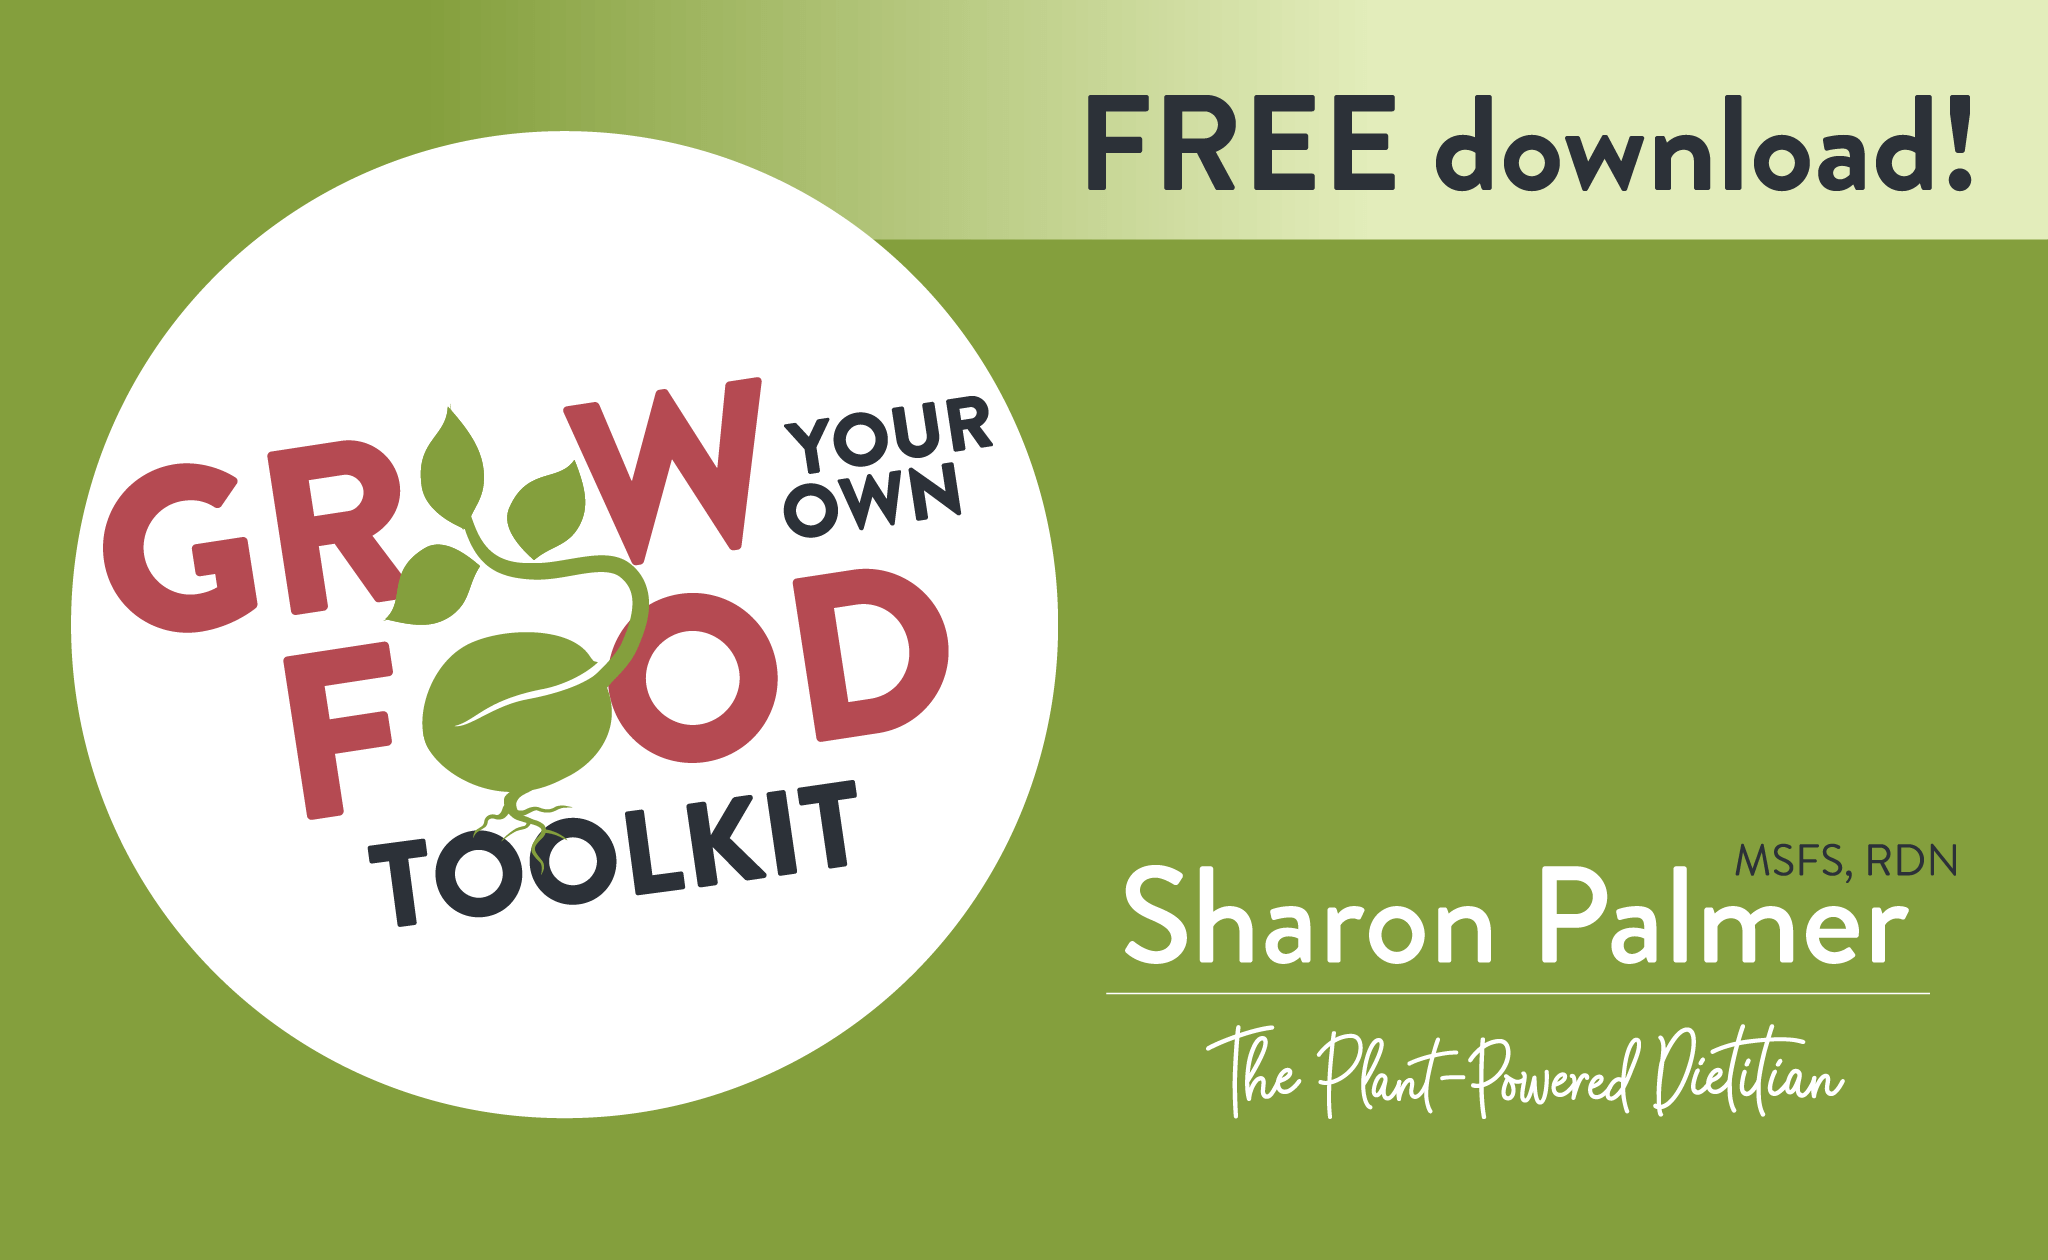 Grow Your Own Food Toolkit from Sharon Palmer, MSFS, RDN